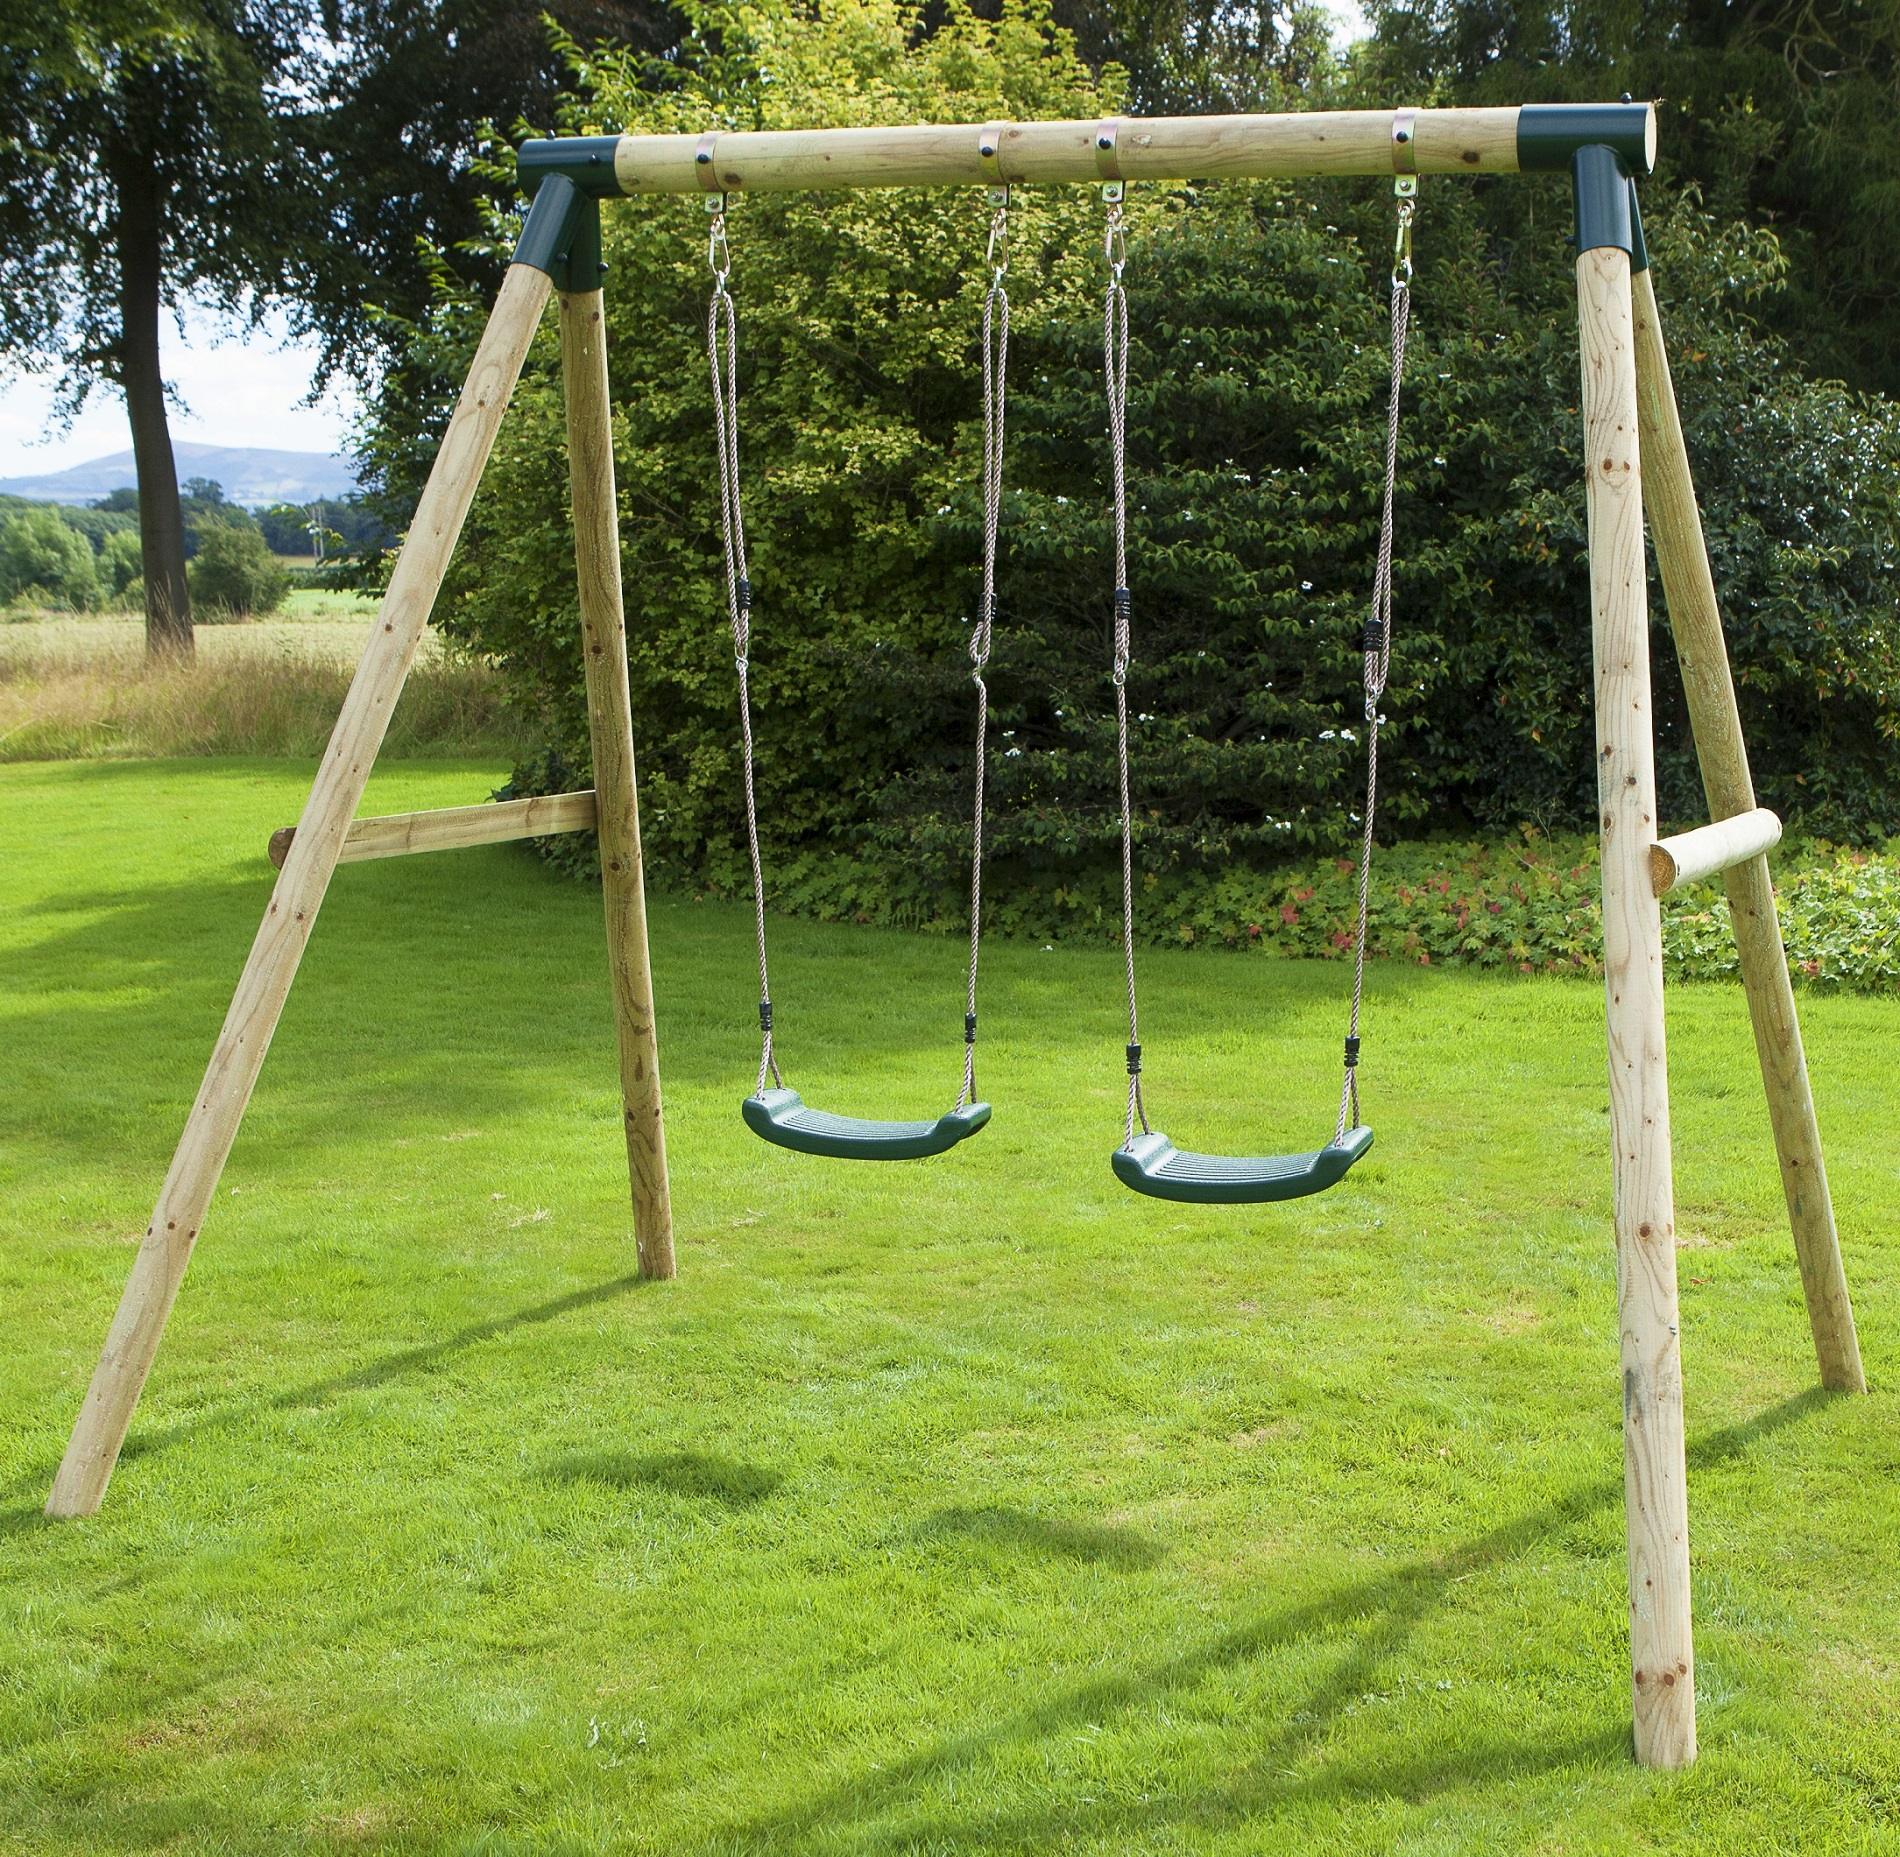 Rebo Venus Wooden Garden Swing Set - Double Swing